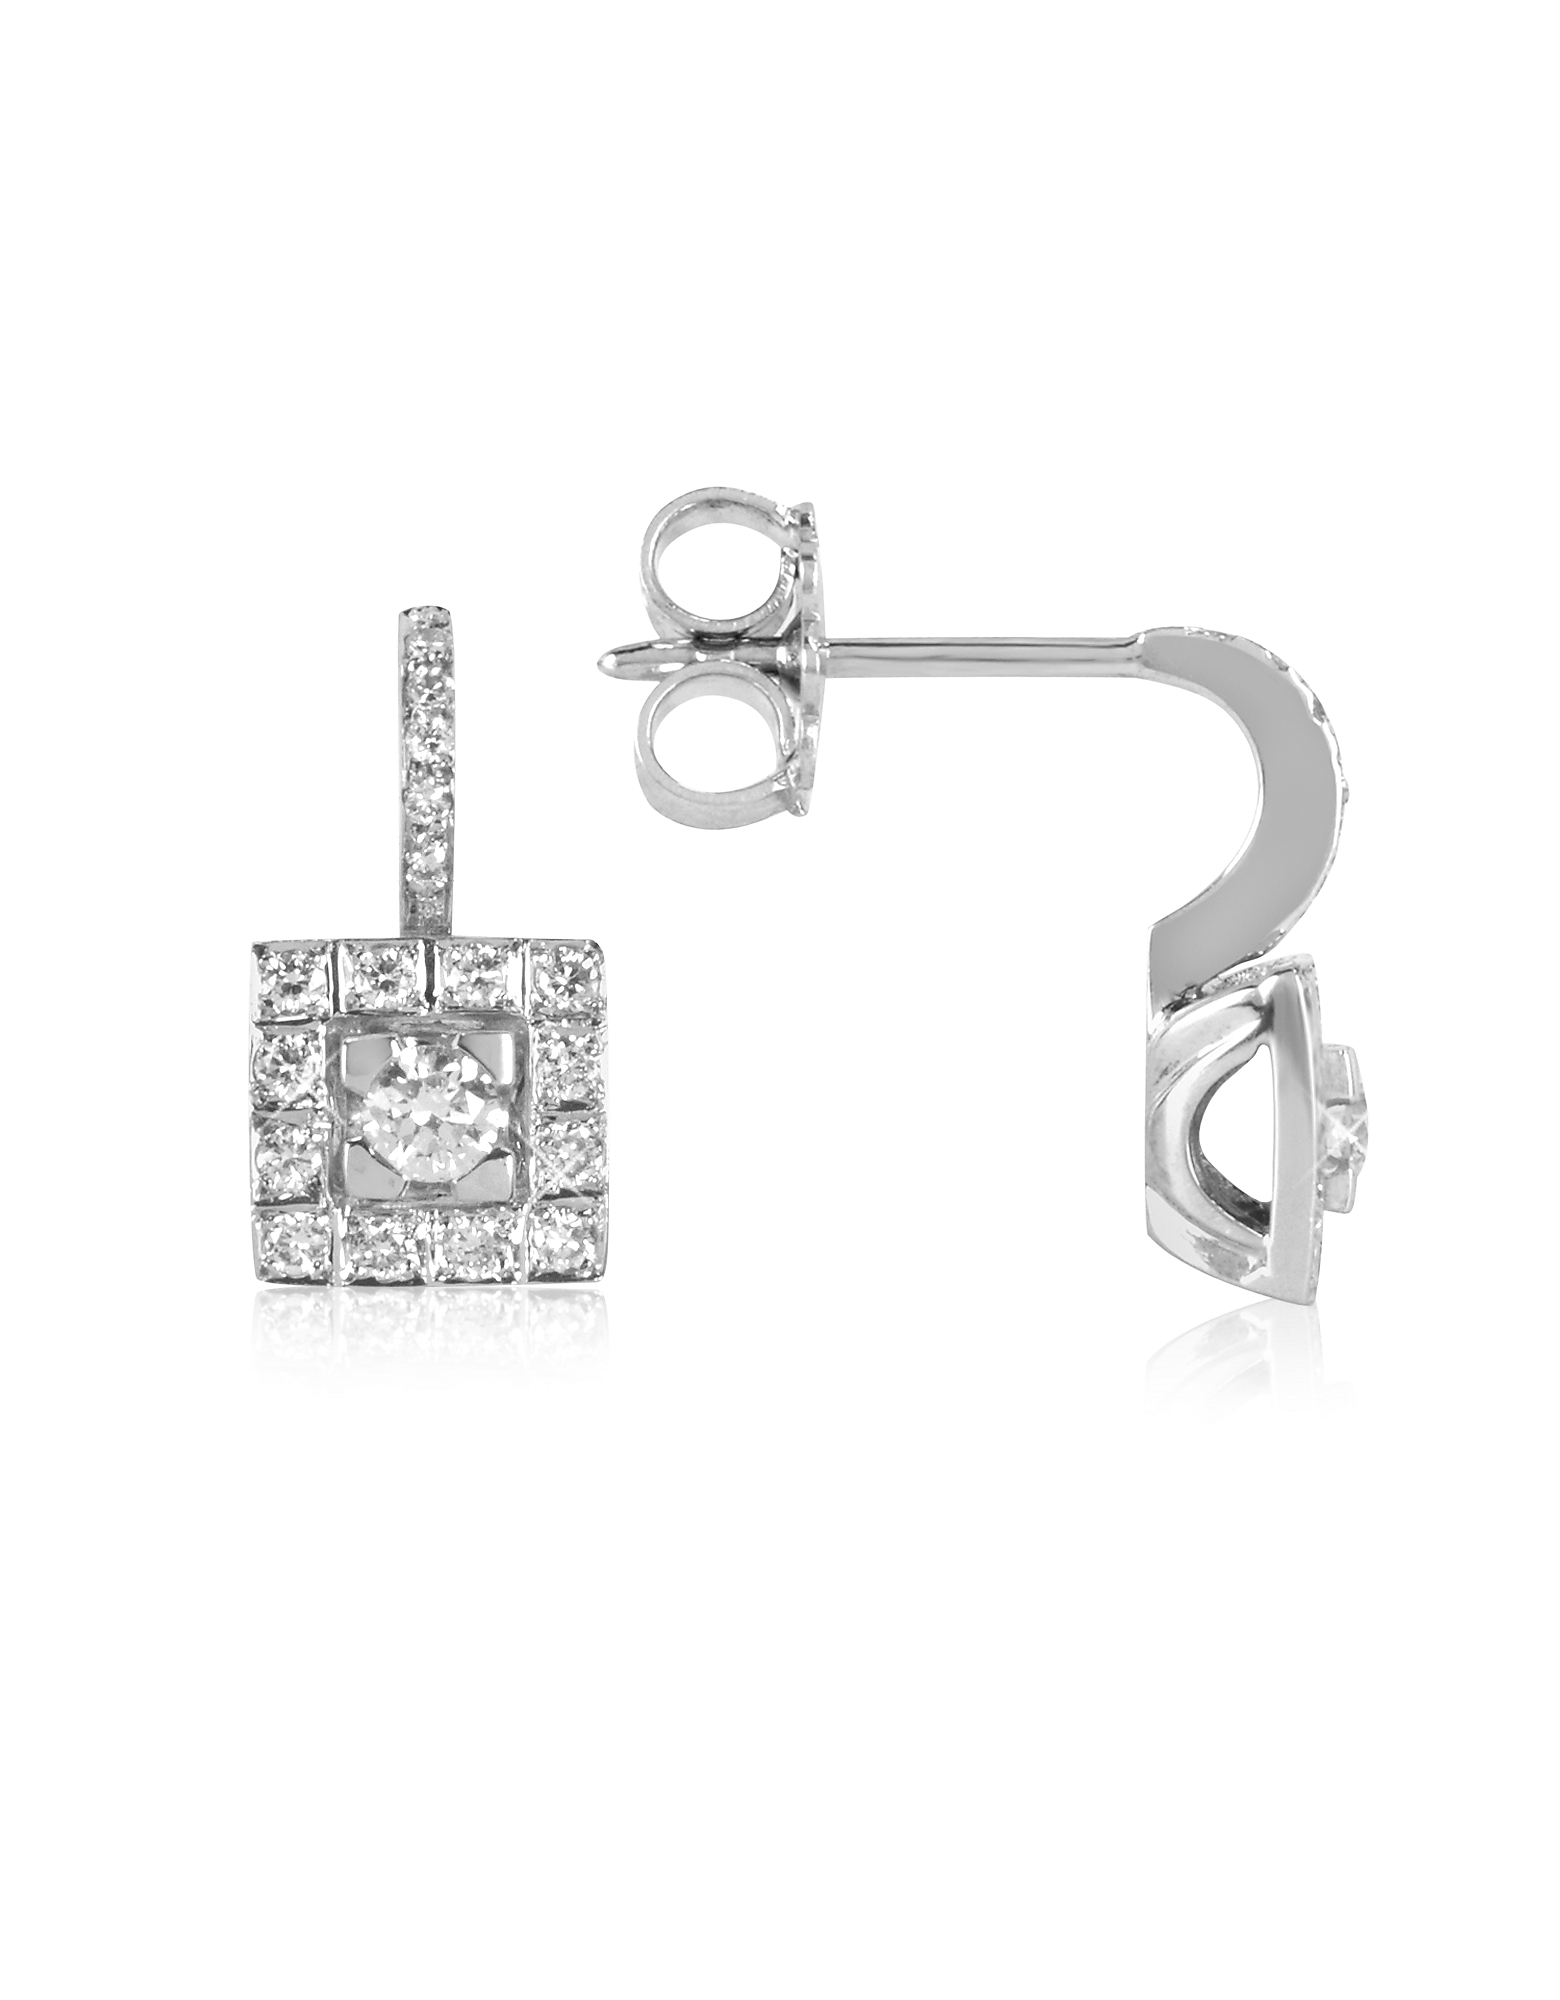 Forzieri Earrings, 0.48 ctw Diamond 18K White Gold Earrings